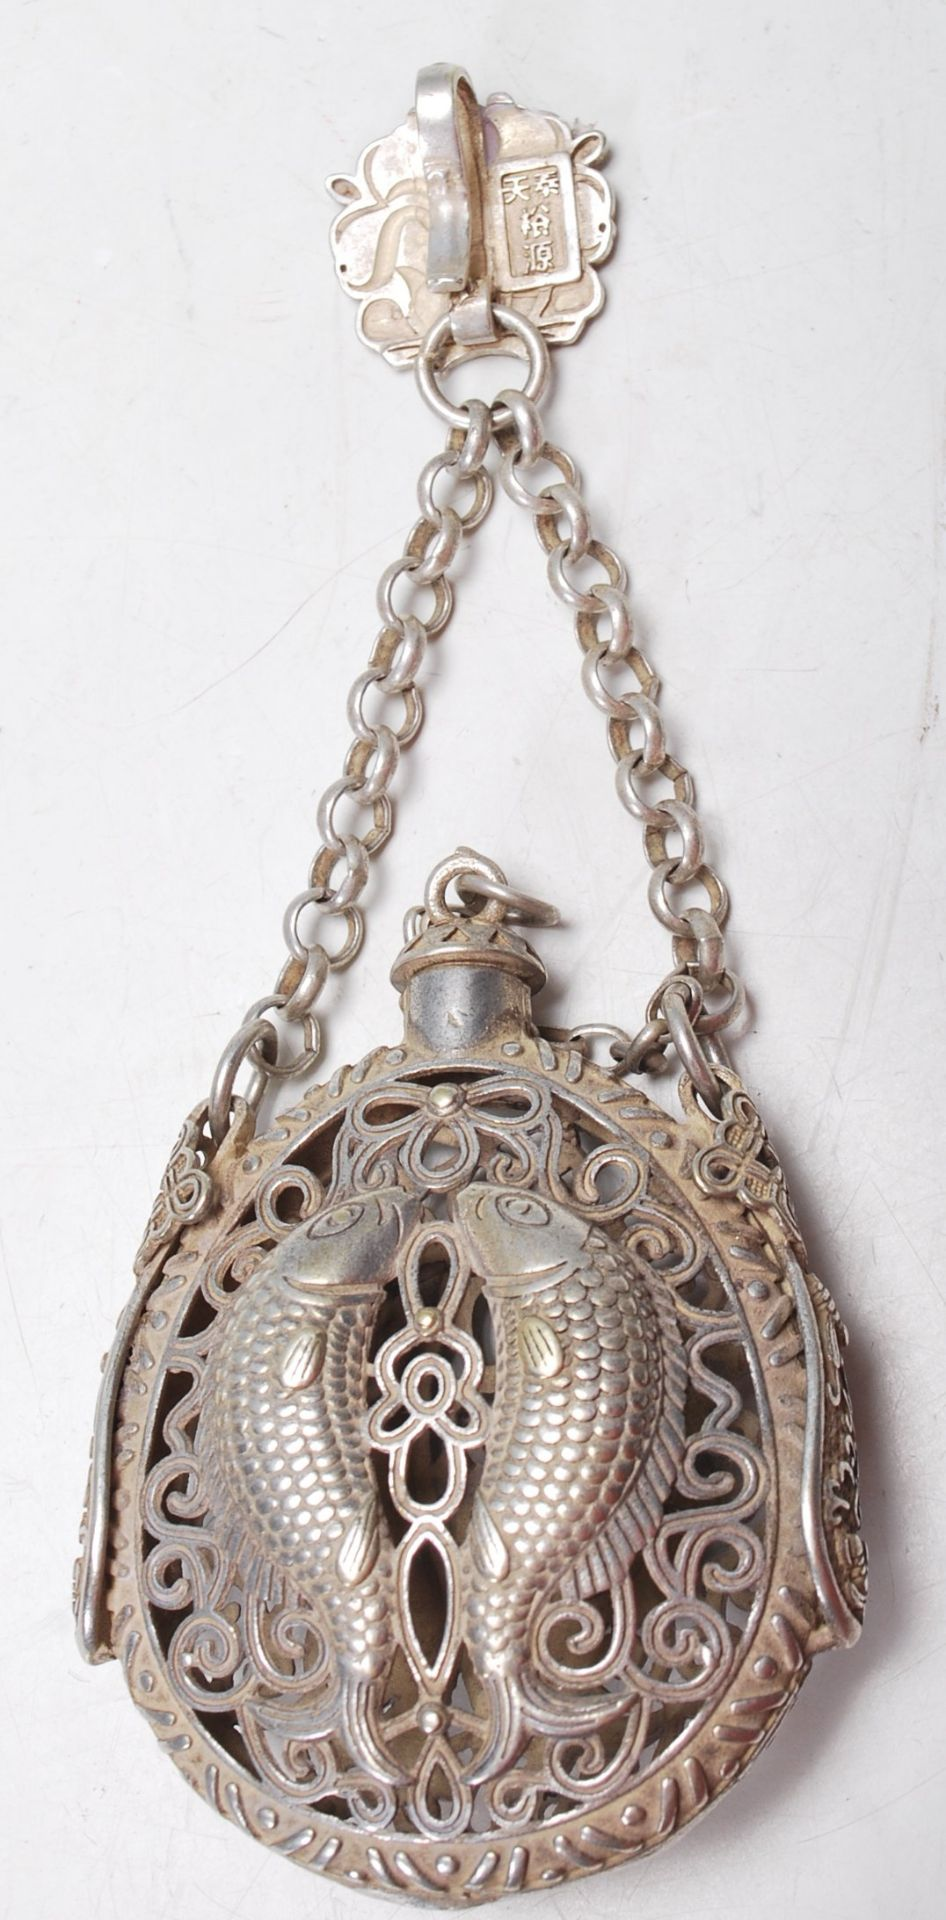 VINTAGE 20TH CENTURY SILVER / WHITE METAL CHINESE SCENT BOTTLE WITH PIERCED DECORATION - Image 4 of 6